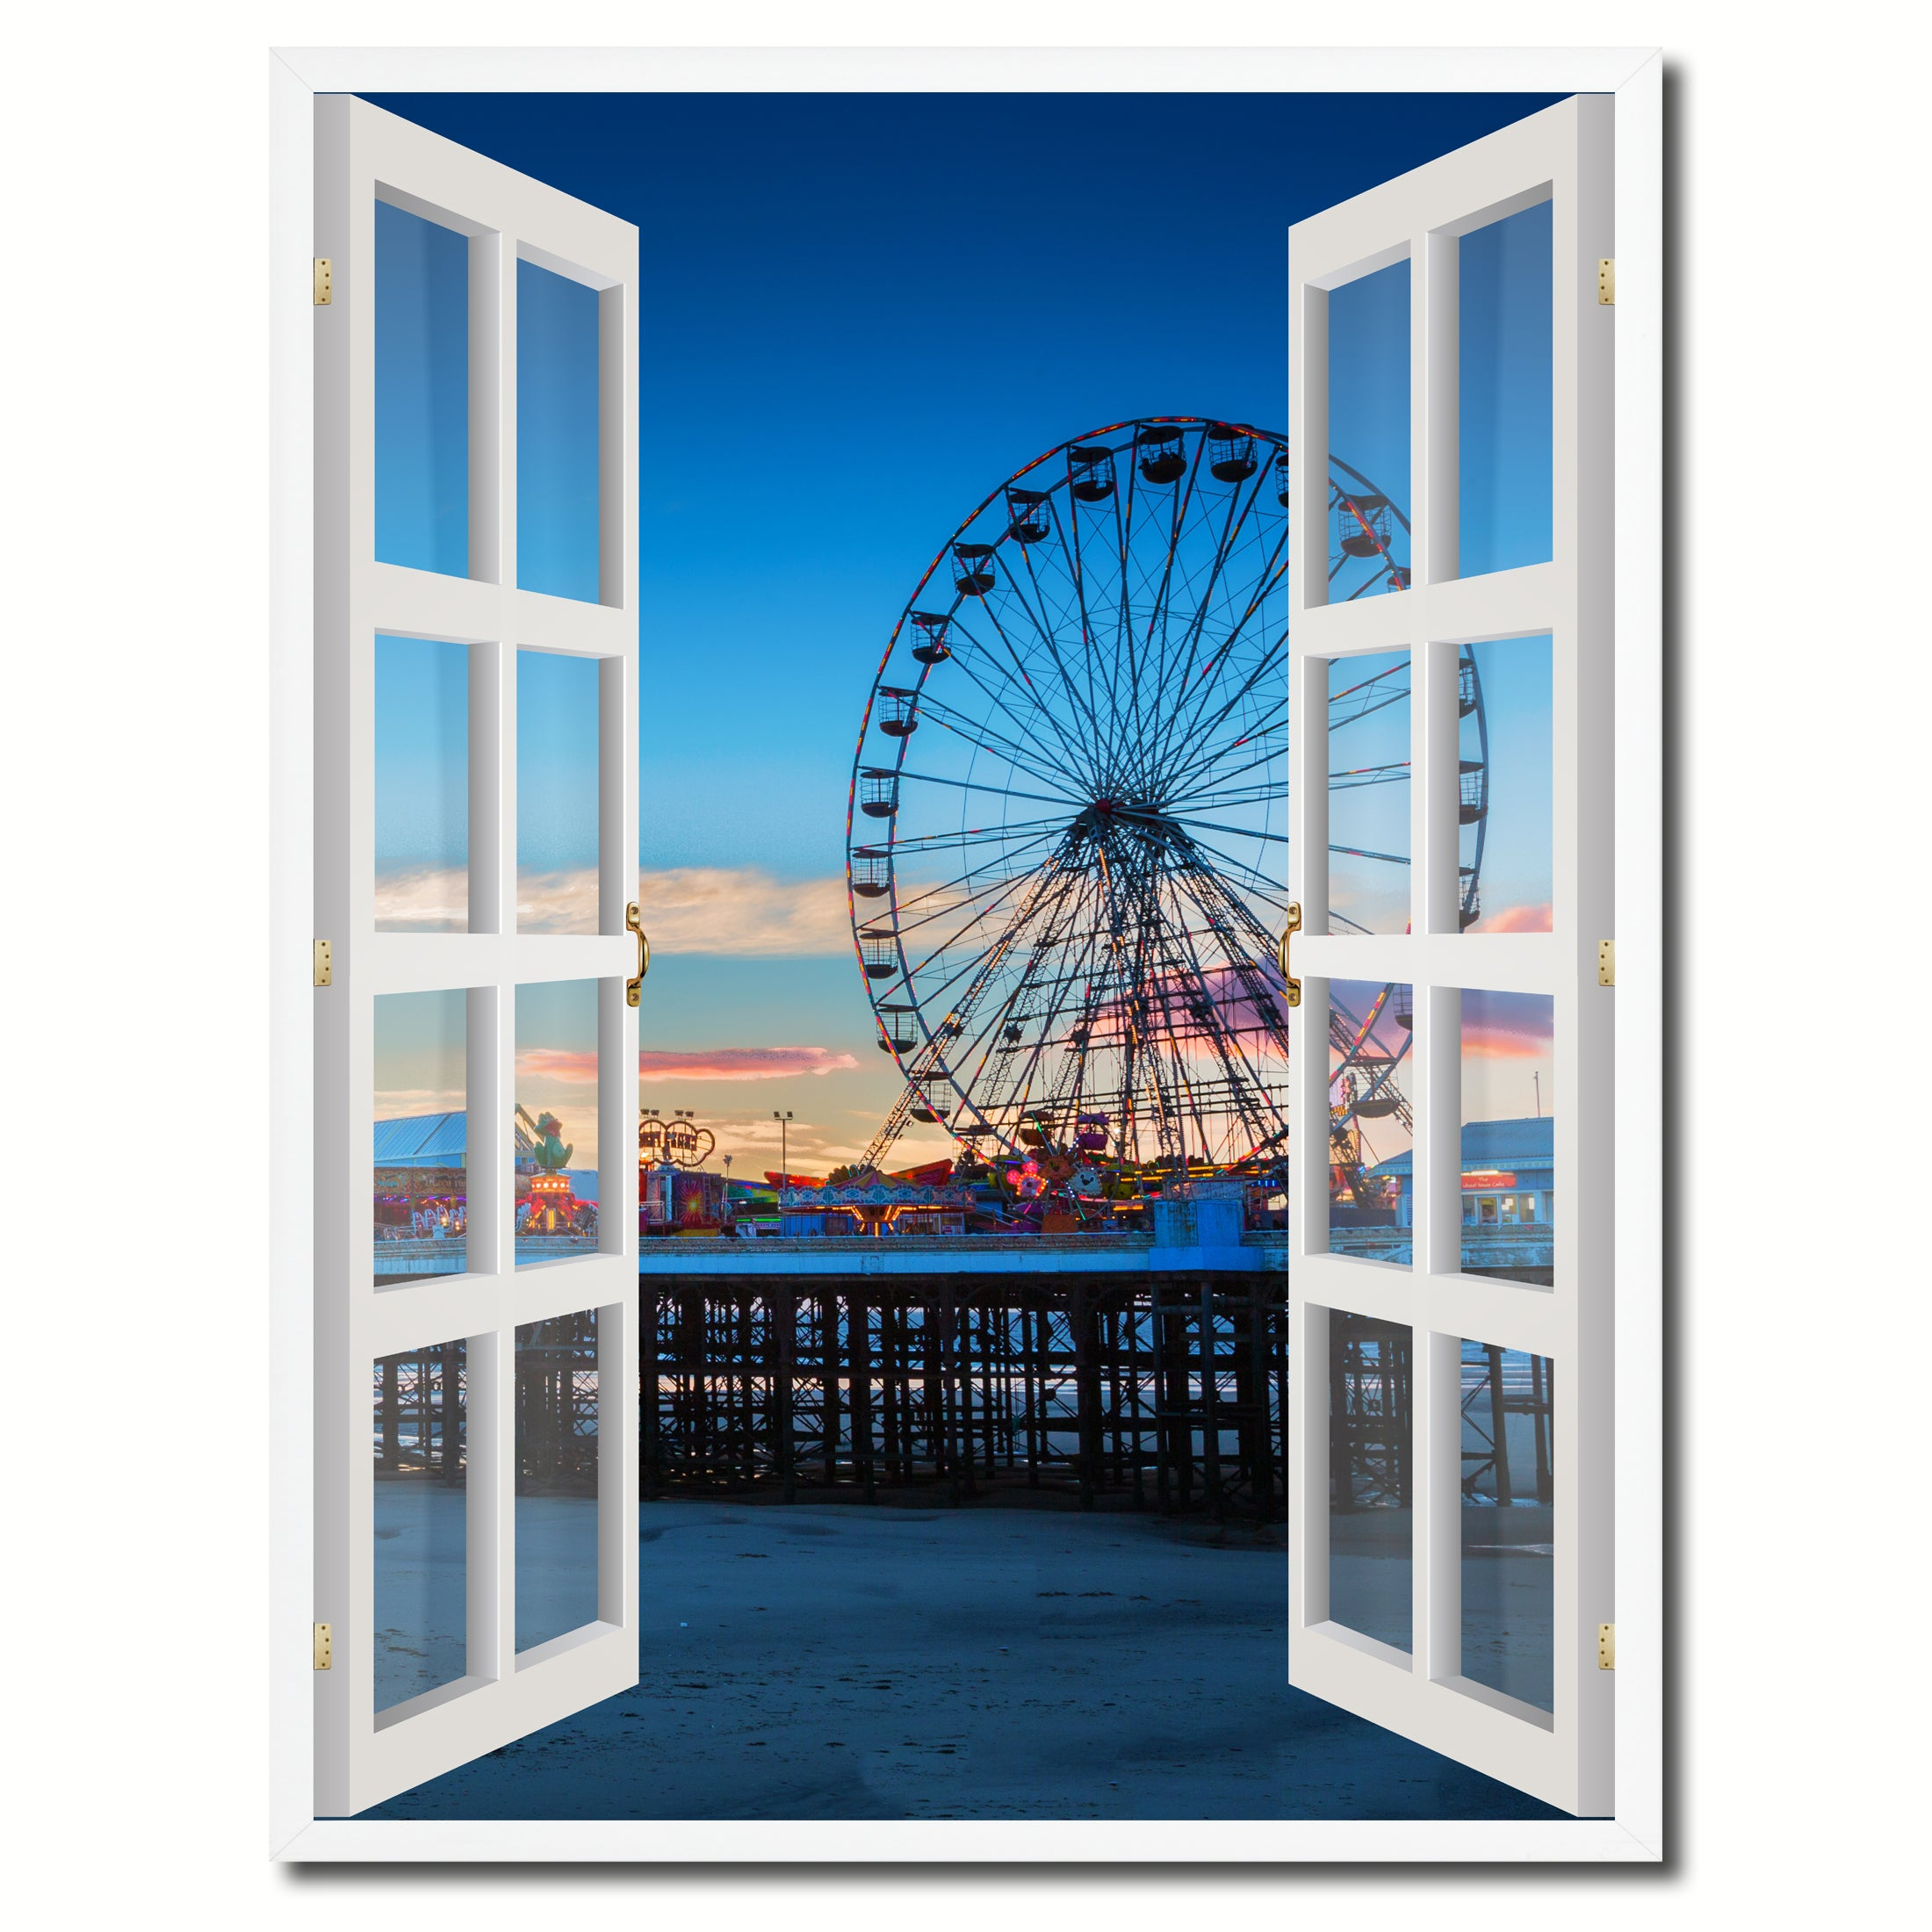 Sunset View Ferris Wheel Picture Window Wall Art Home Decor Gift ...